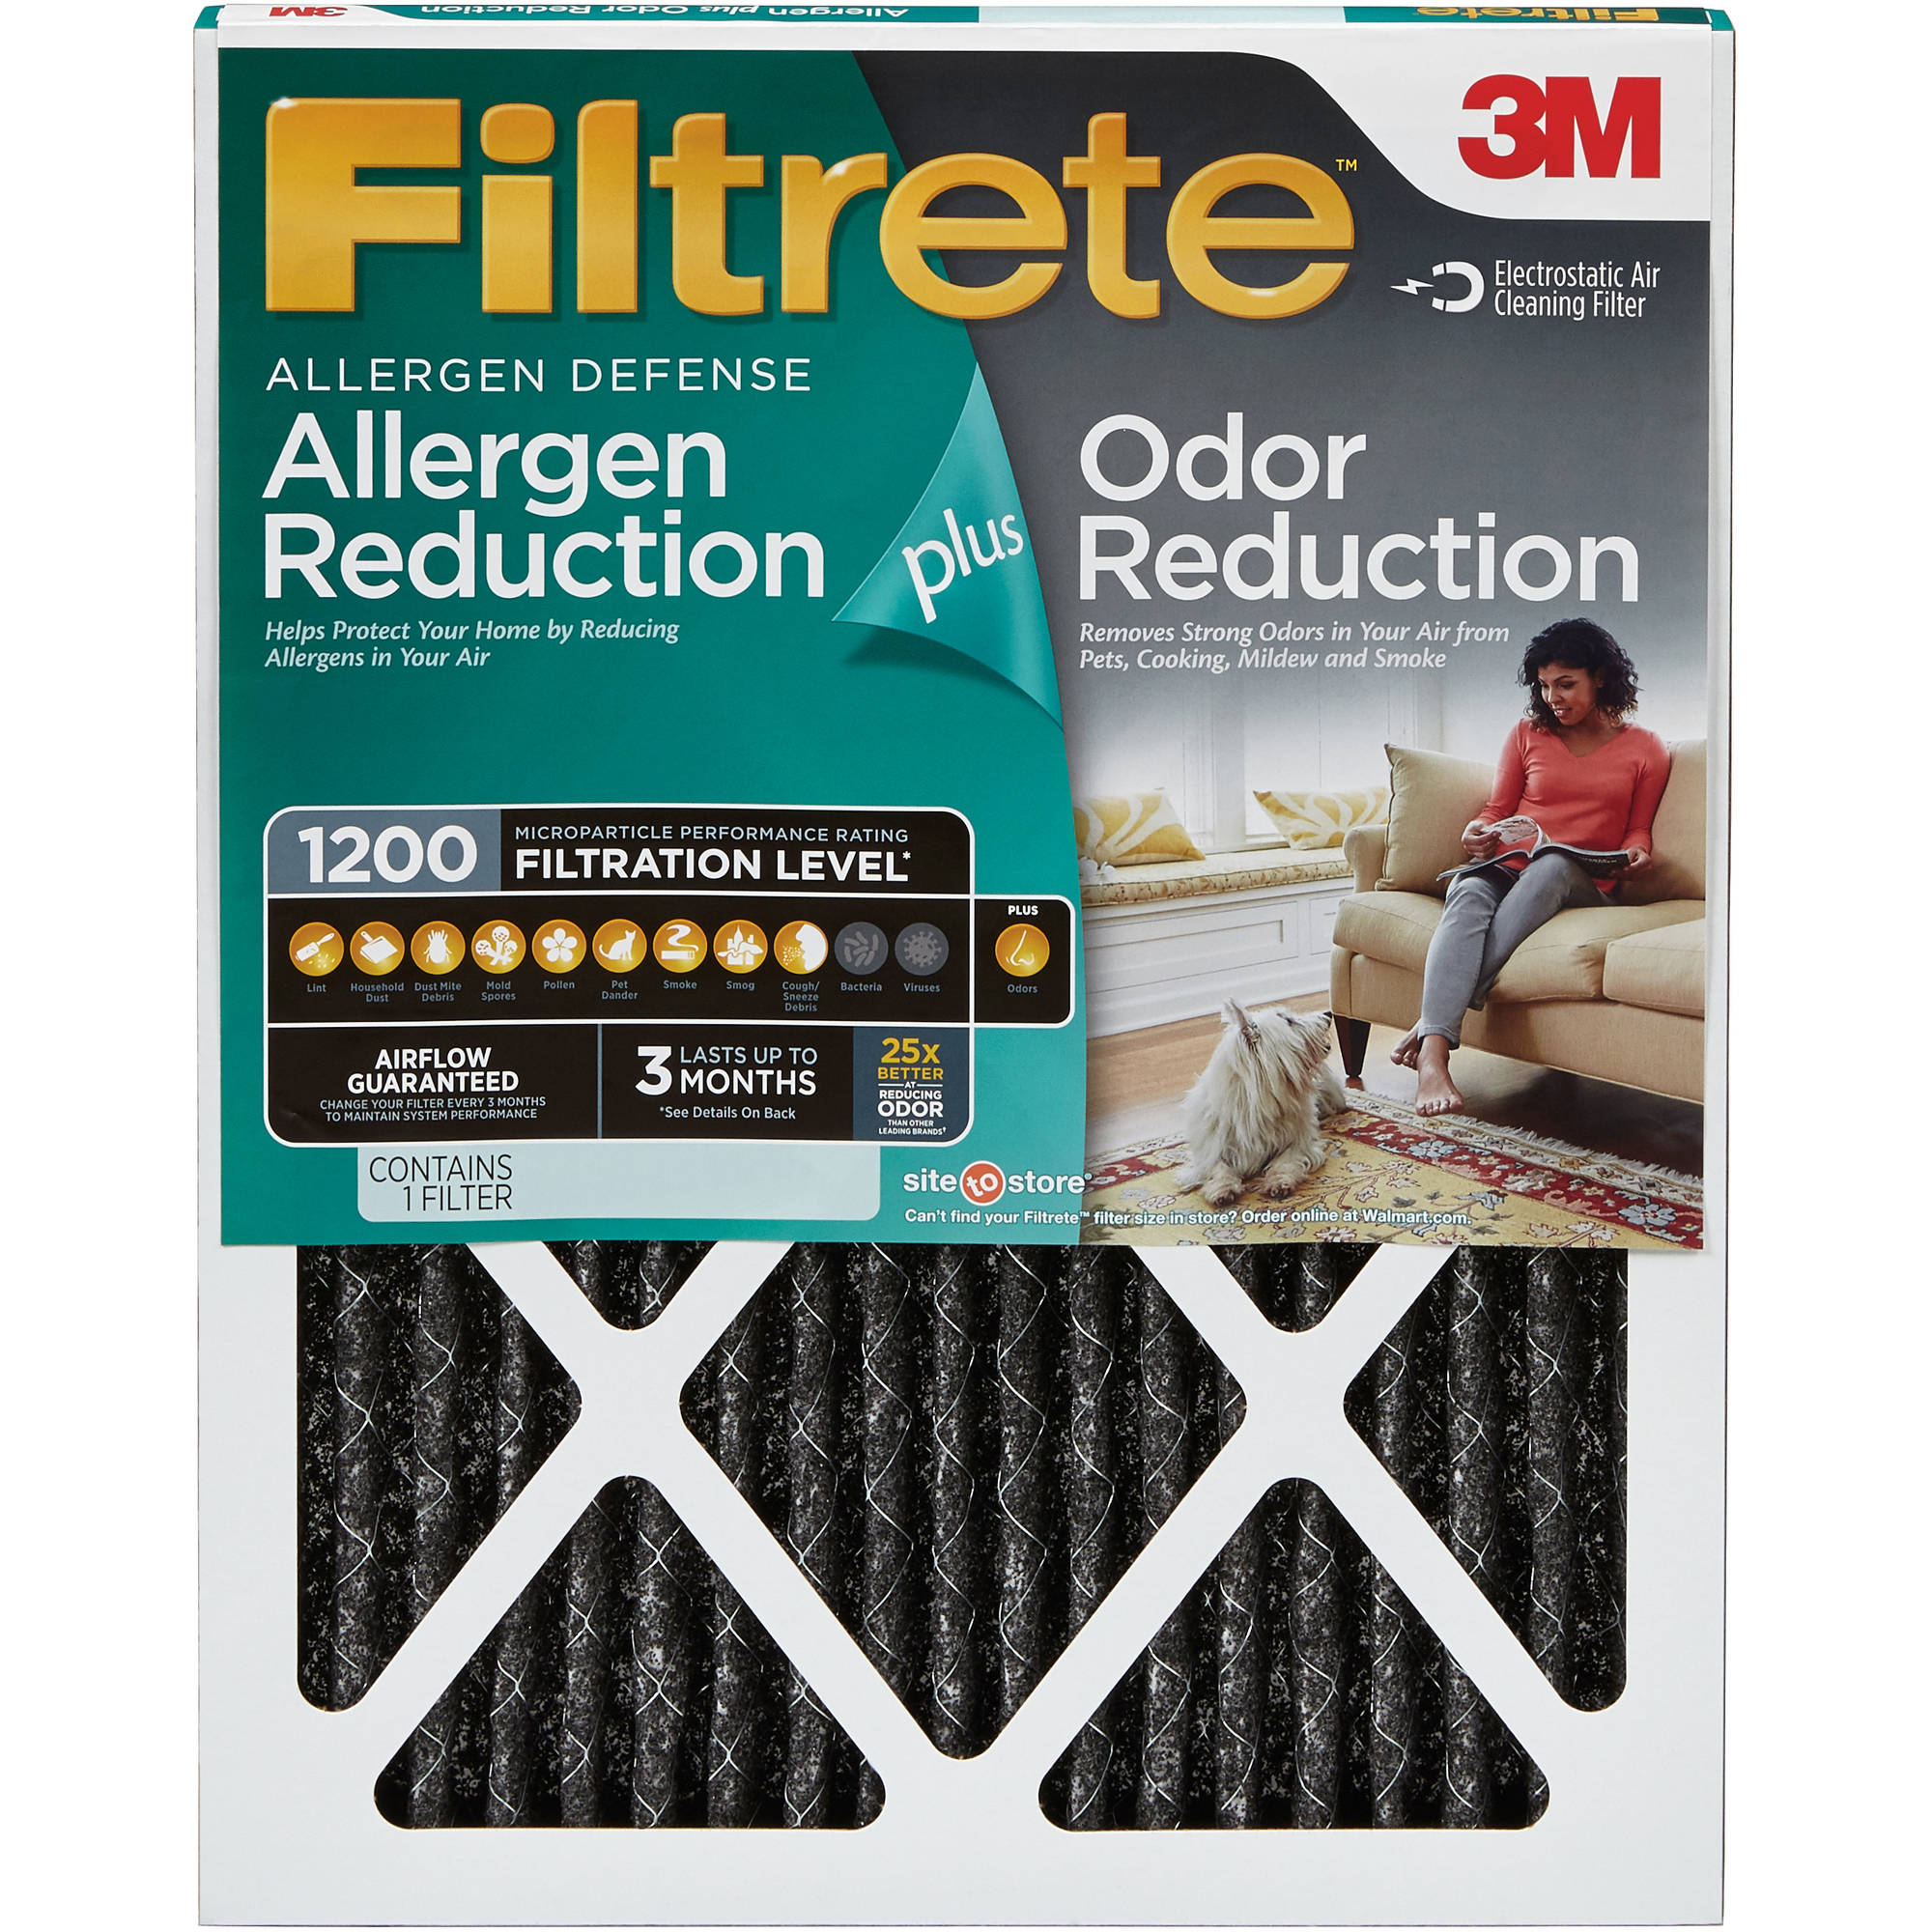 Filtrete Allergen Plus Odor Reduction HVAC Furnace Air Filter, 1200 MPR, 18 x 18 x 1, 1 Filter